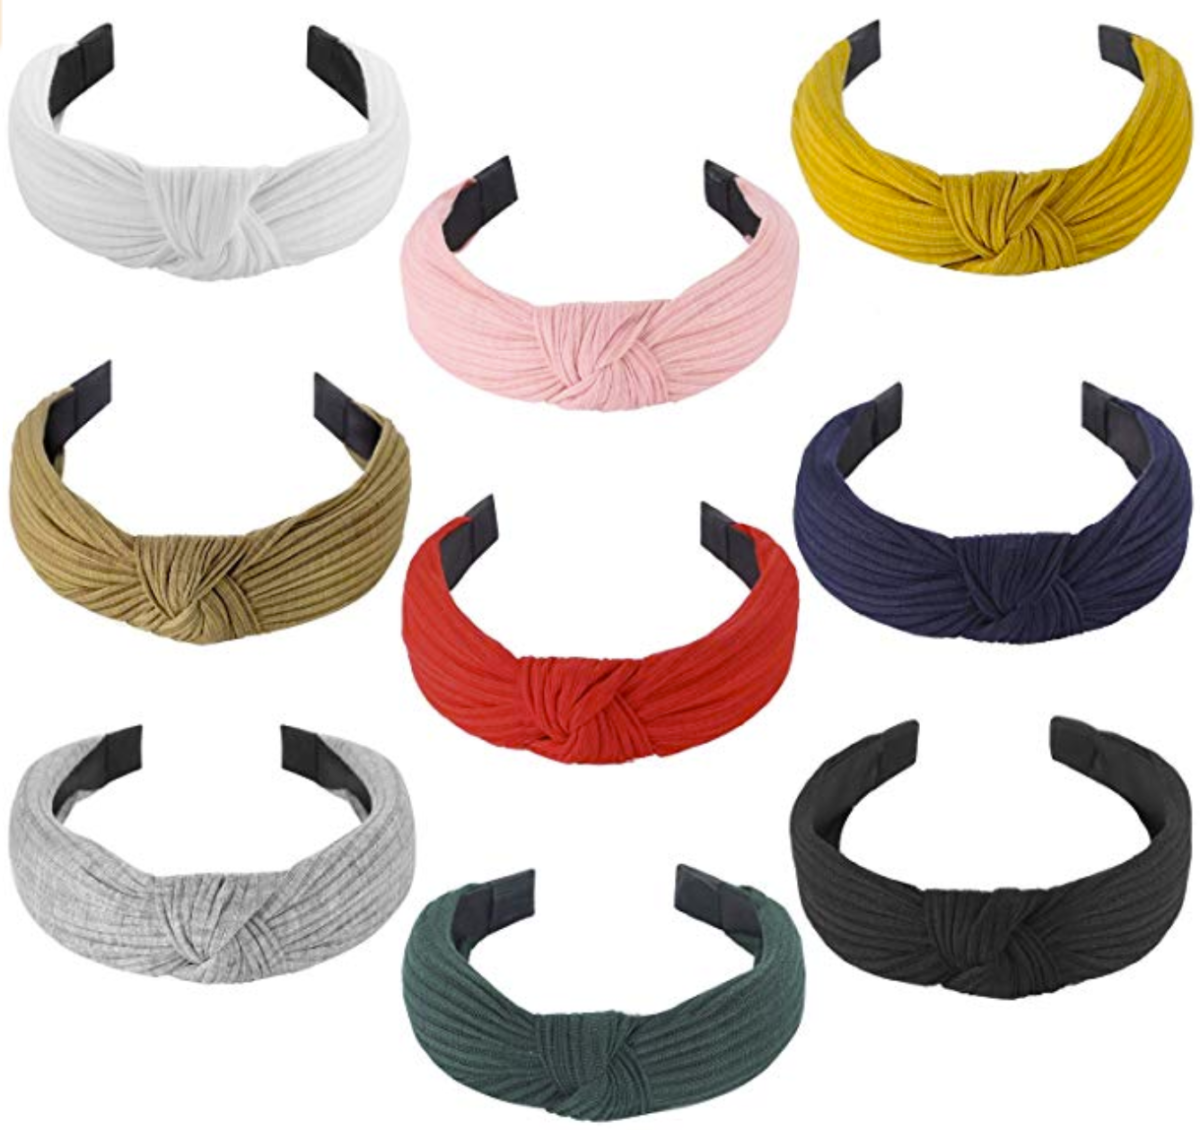 headbands | t | Spring Clothing by popular Houston fashion blog, Haute and Humid: image of various knotted headbands.